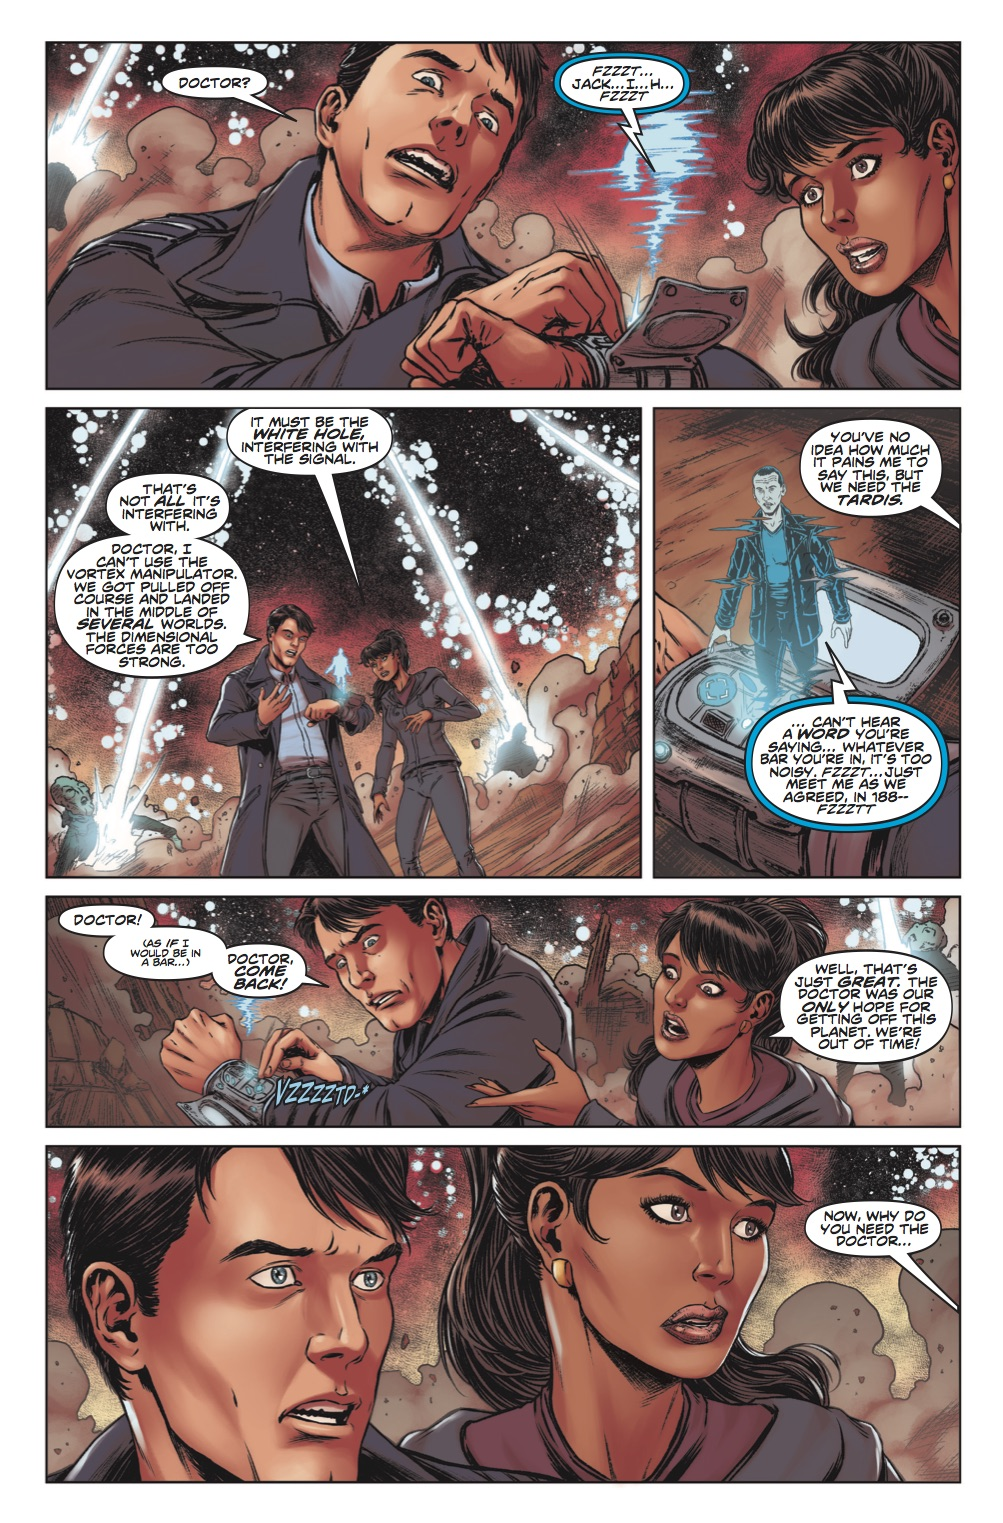 Doctor Who: The Lost Dimension Book One - Page 3 (Credit: Titan )